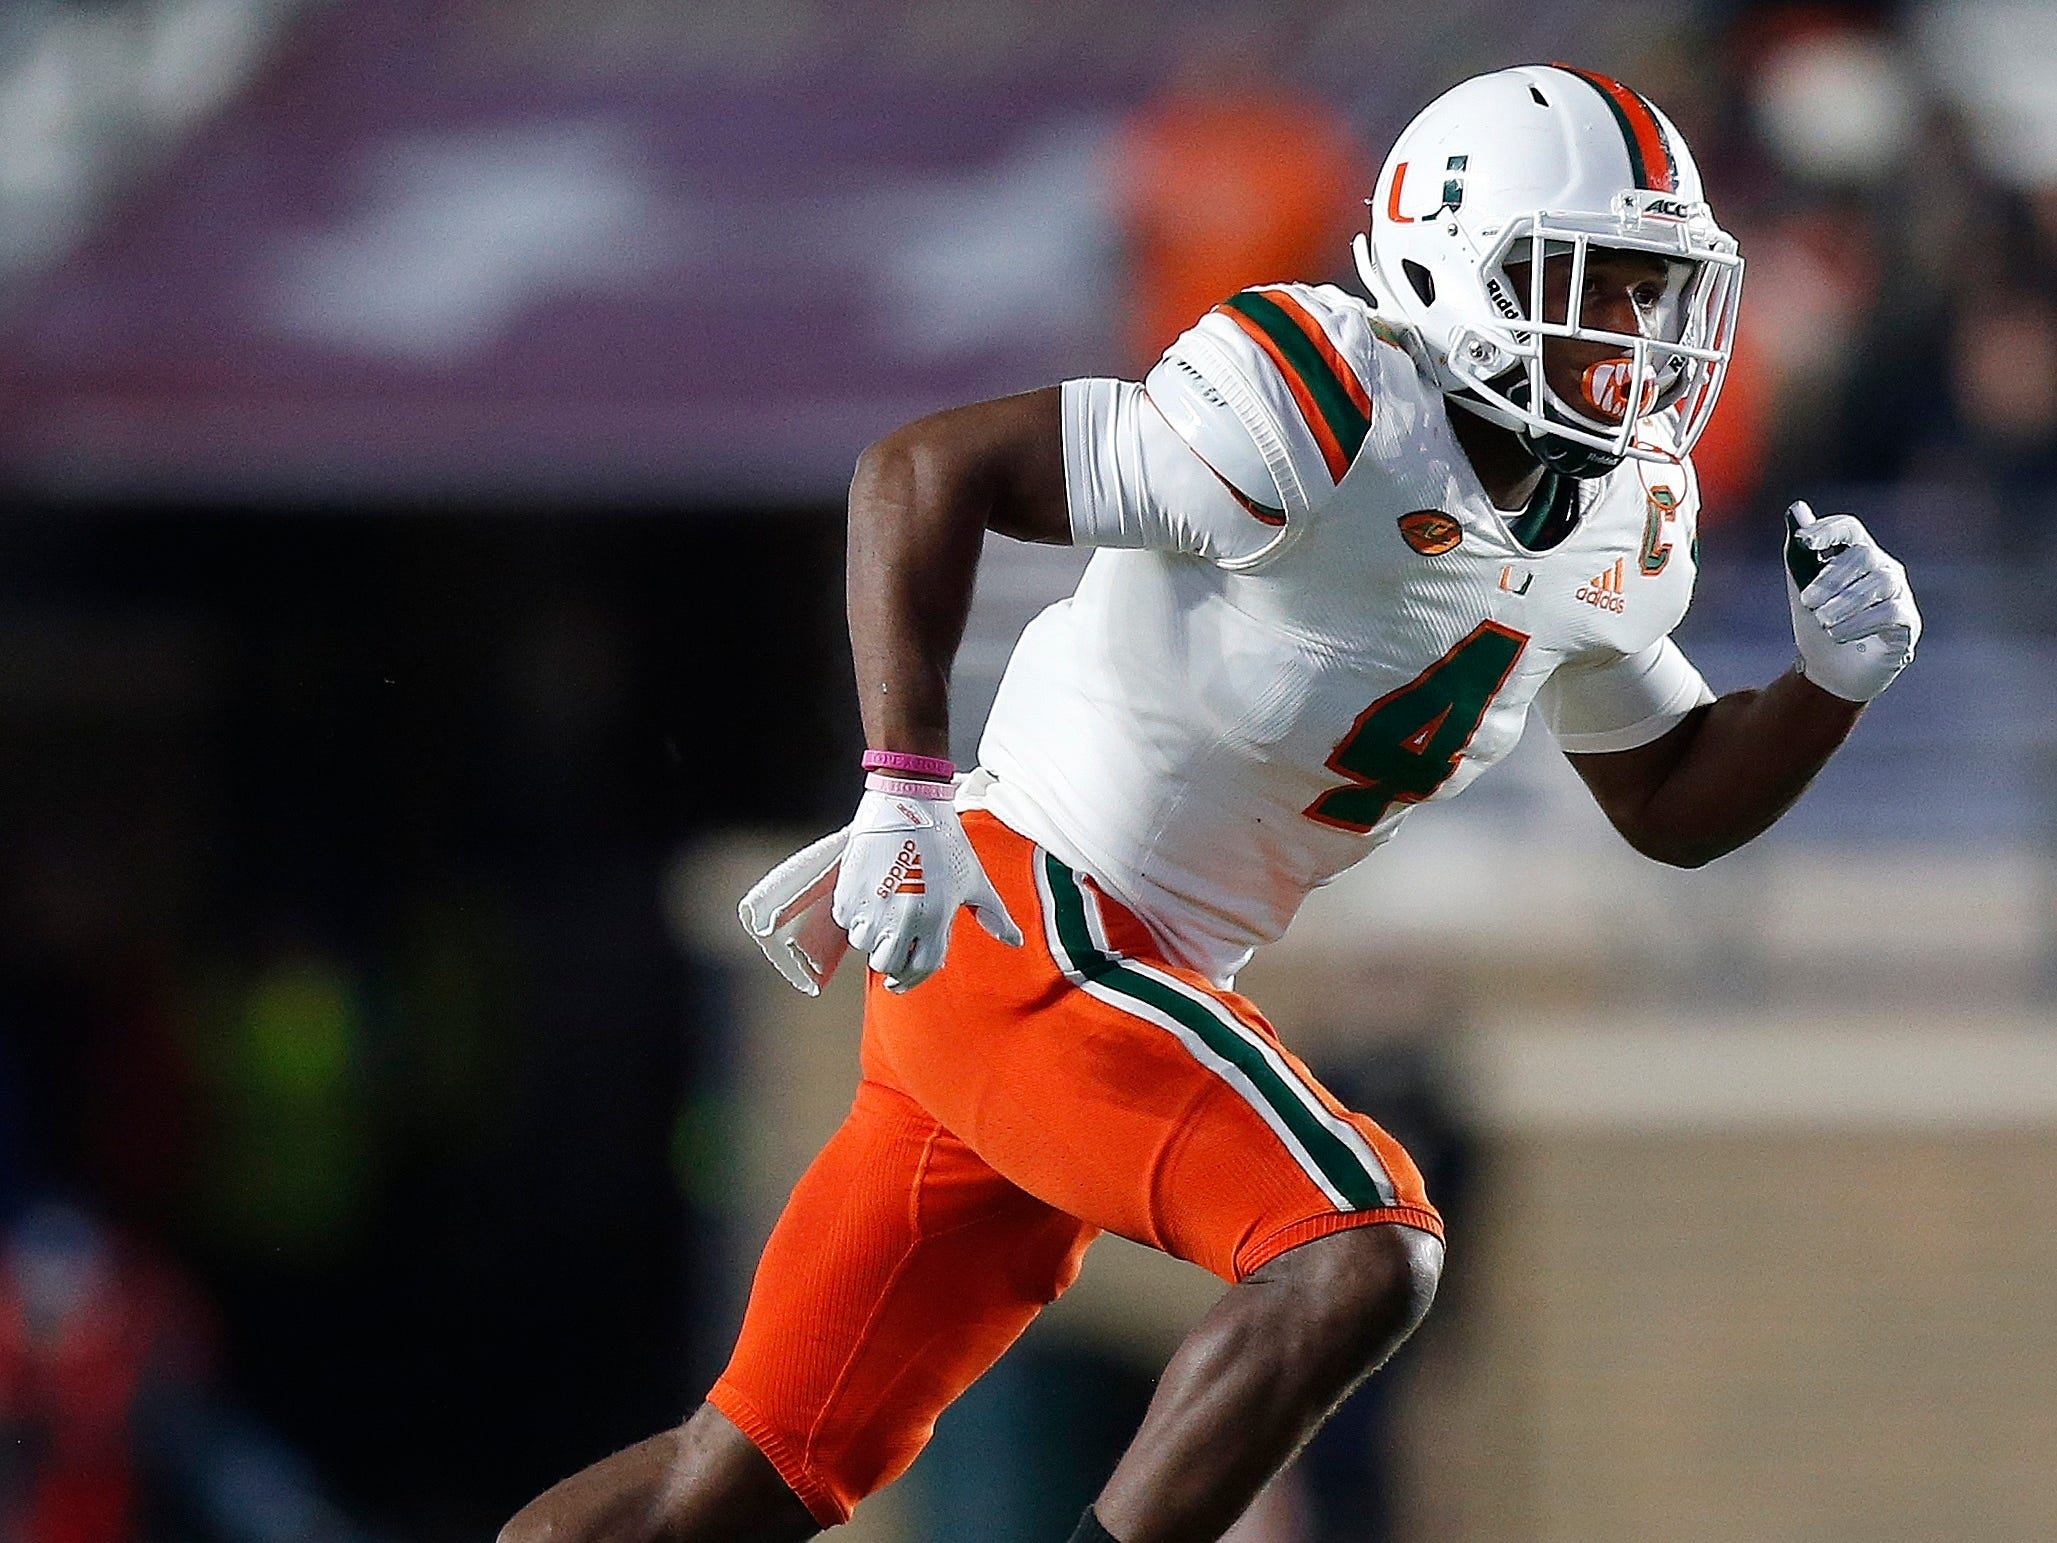 43. Jaquan Johnson, S, Miami (Fla.): In a lot of ways, adding Johnson would be like adding a second, more athletic, Quandre Diggs to the back end of the defense. Johnson processes plays quickly and hits hard. He's racked up big tackle numbers for the Hurricanes, while intercepting seven passes and forcing six fumbles during his four-year college career.